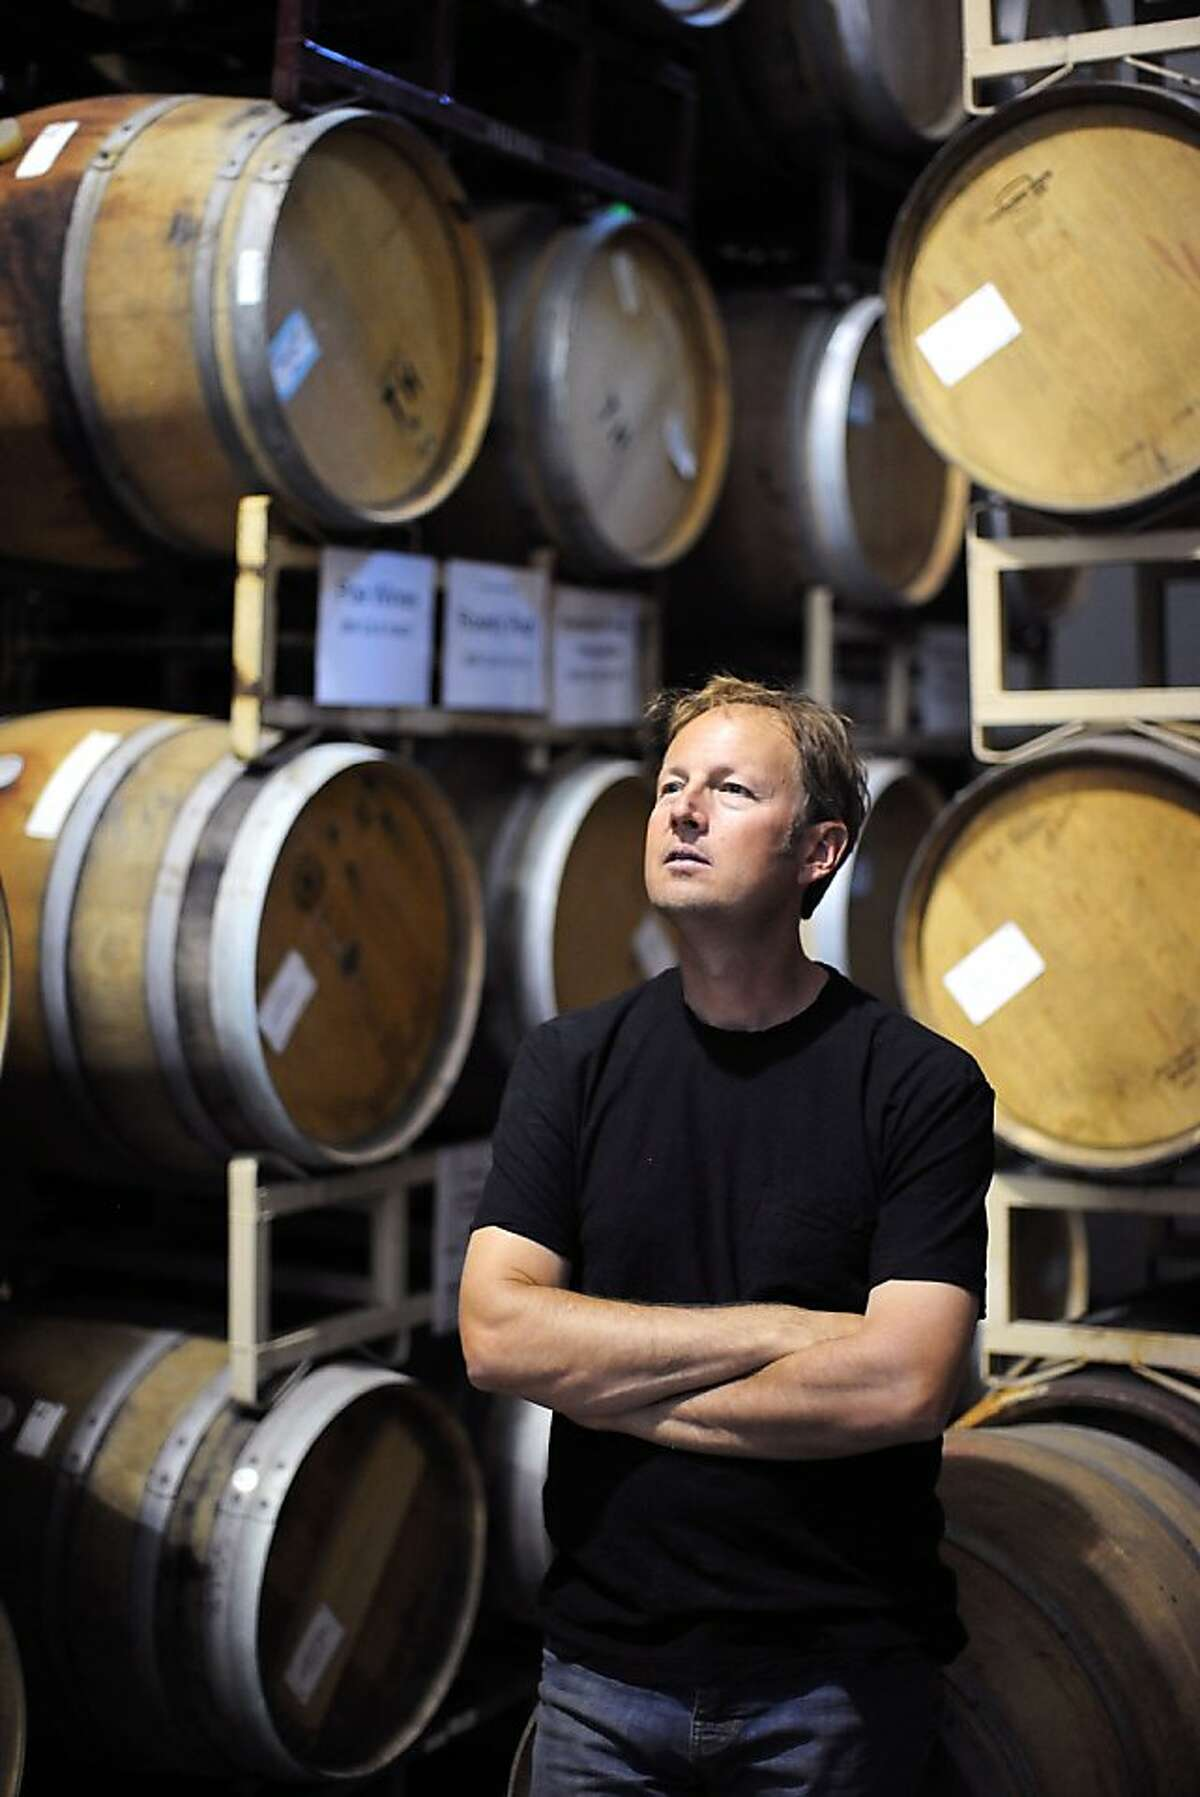 Steve Matthiasson looks around the barrel room at Silenus Vintners, a where he produces his wine after harvest, in Napa, CA Wednesday April 10th, 2013.